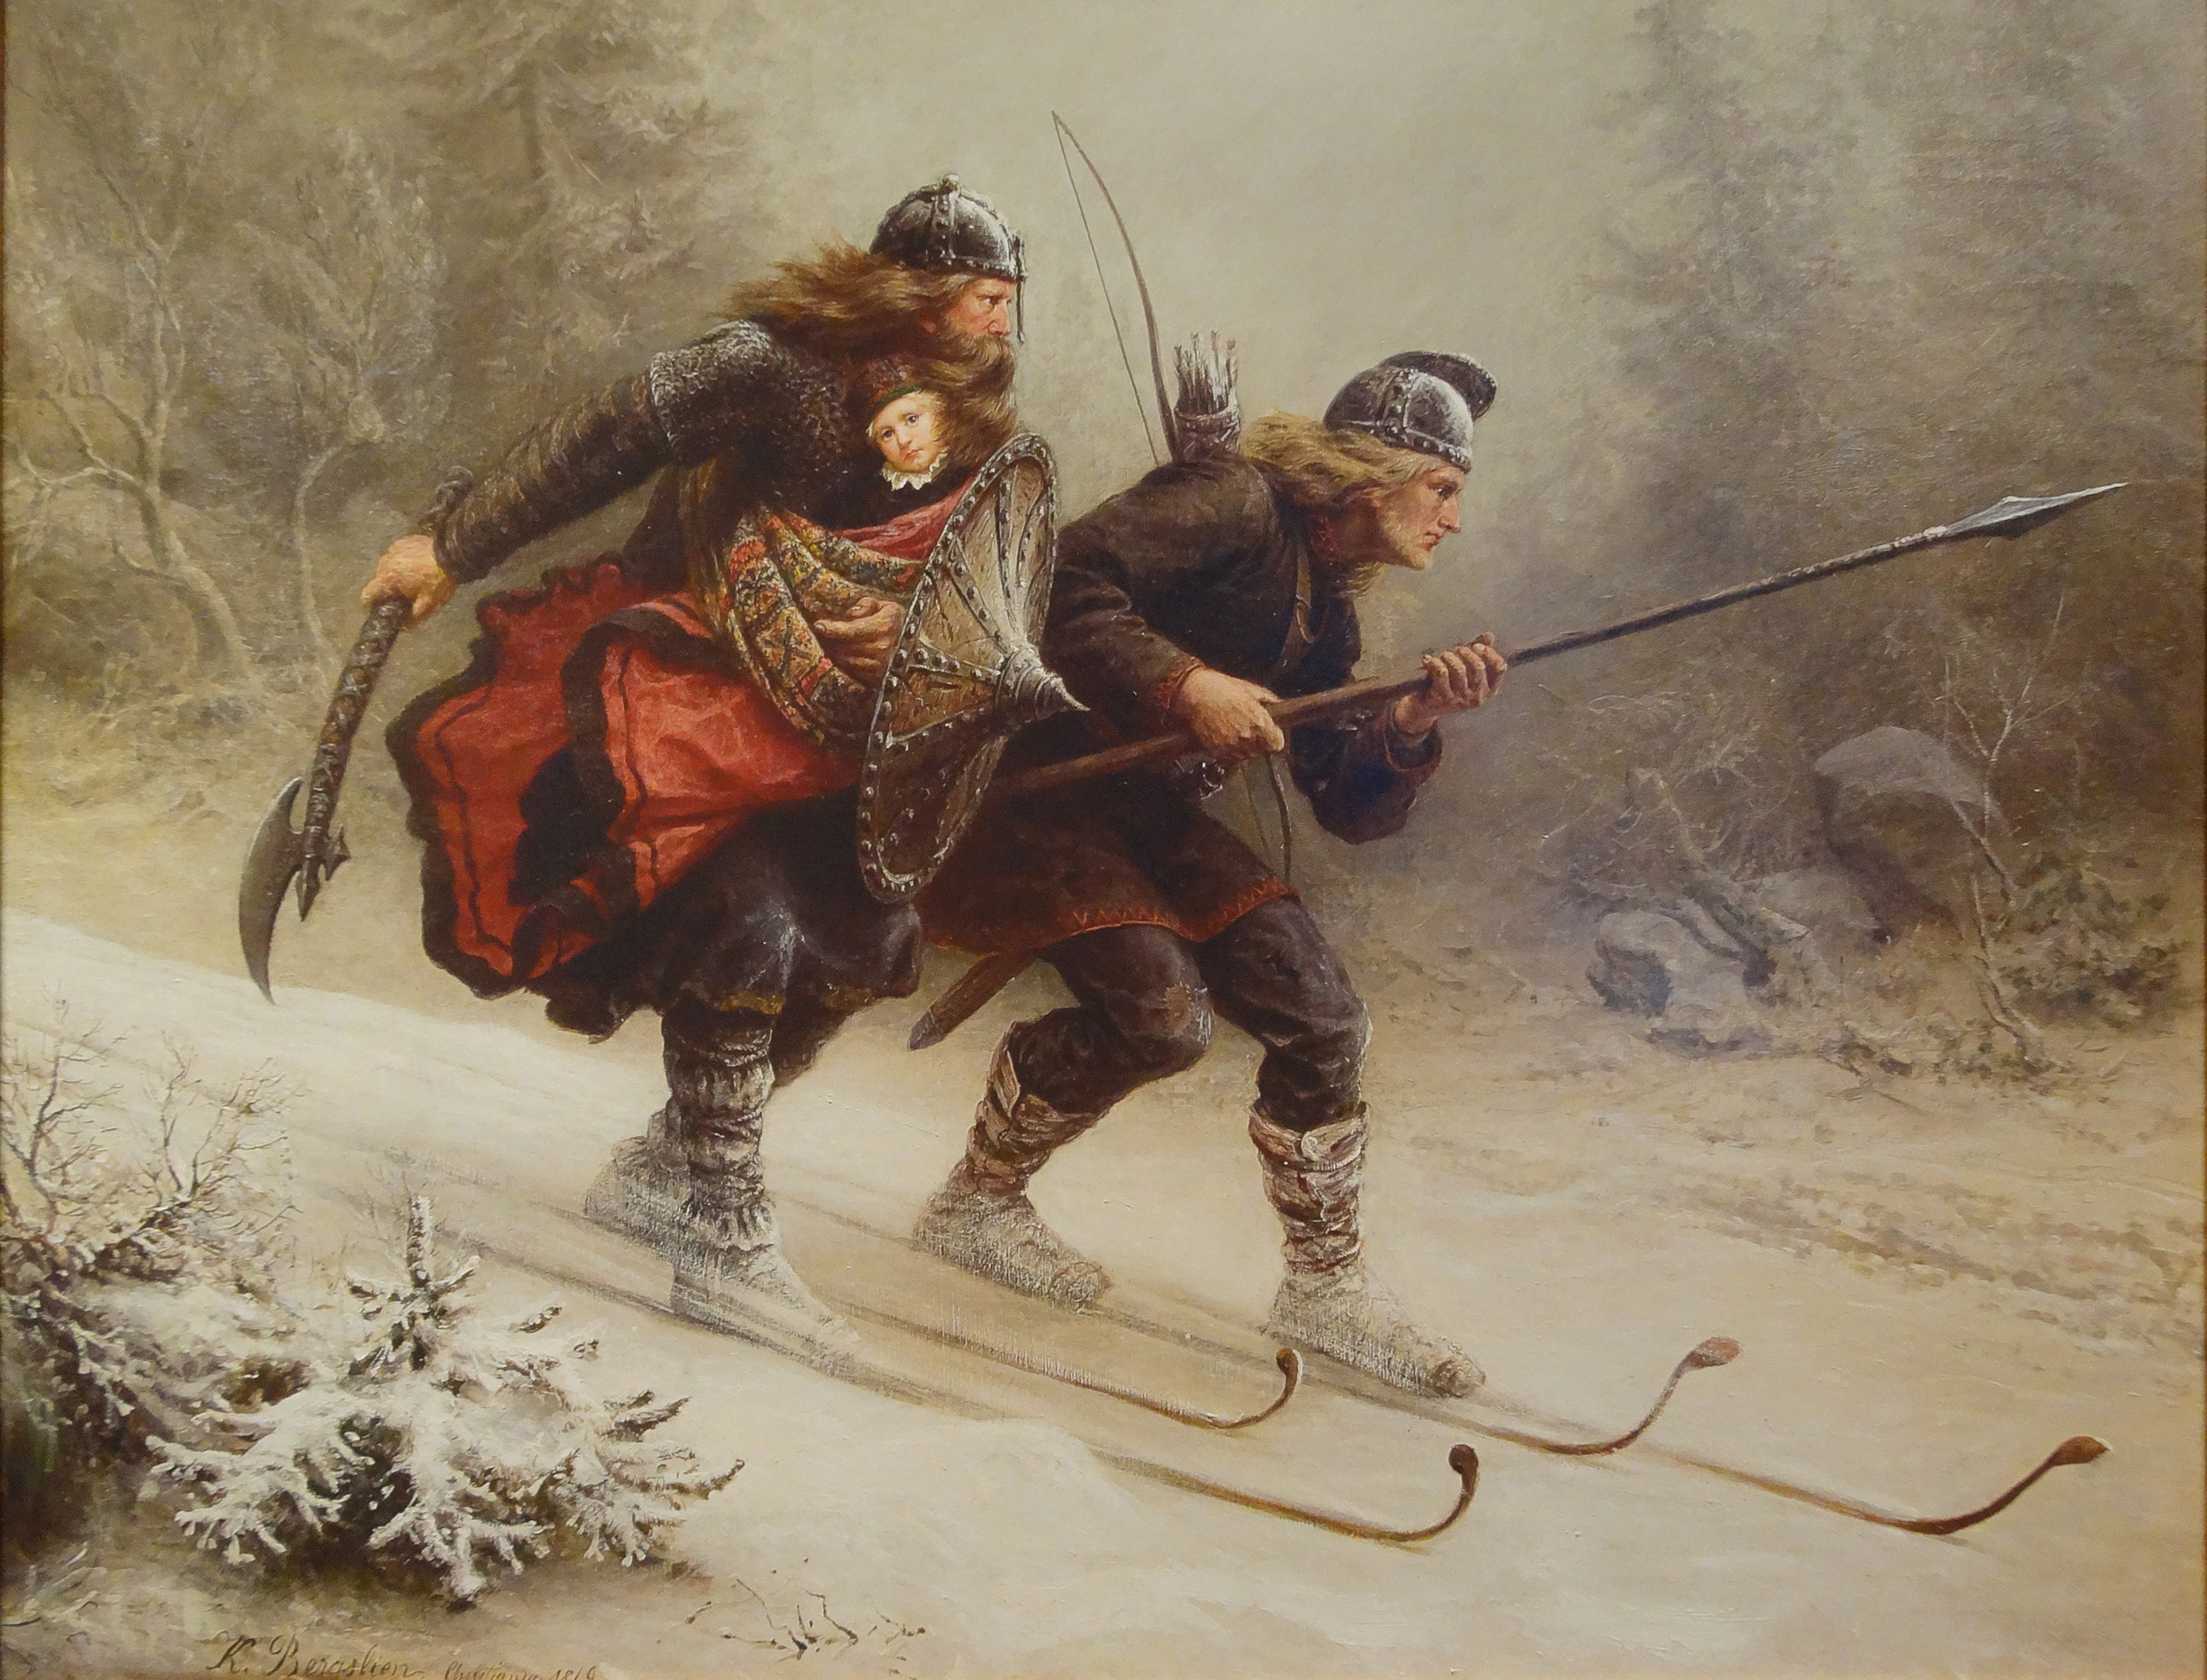 'Skiing Birchlegs Crossing the Mountain with the Royal Child' by Norwegian painter Knud Bergslien. Image source: www.commons.wikimedia.org